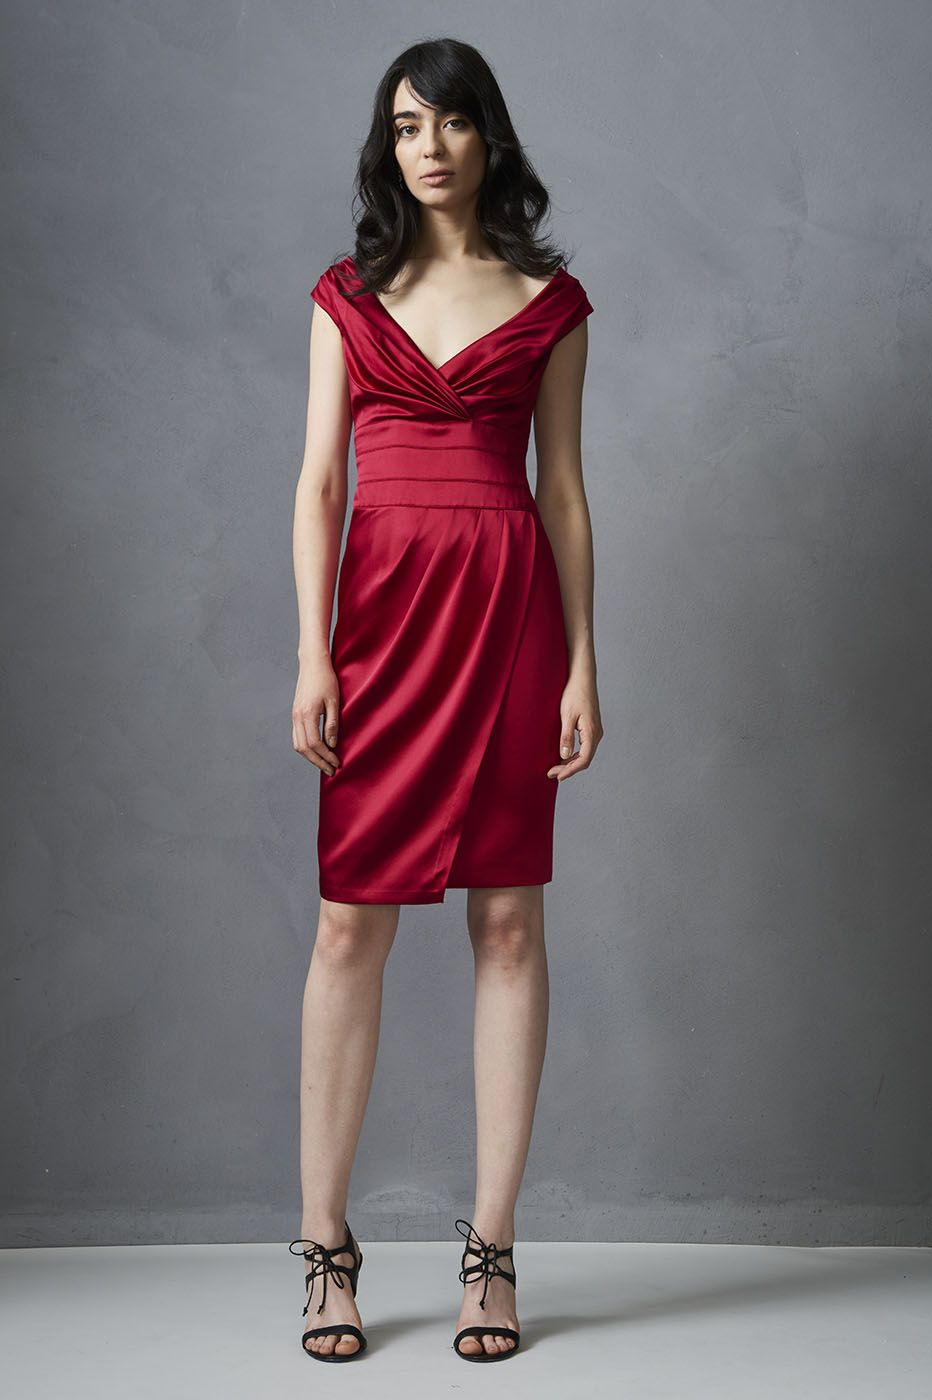 Stretch Satin Cocktail Dress from KAY UNGER | Fashion Flair Jewelry ...